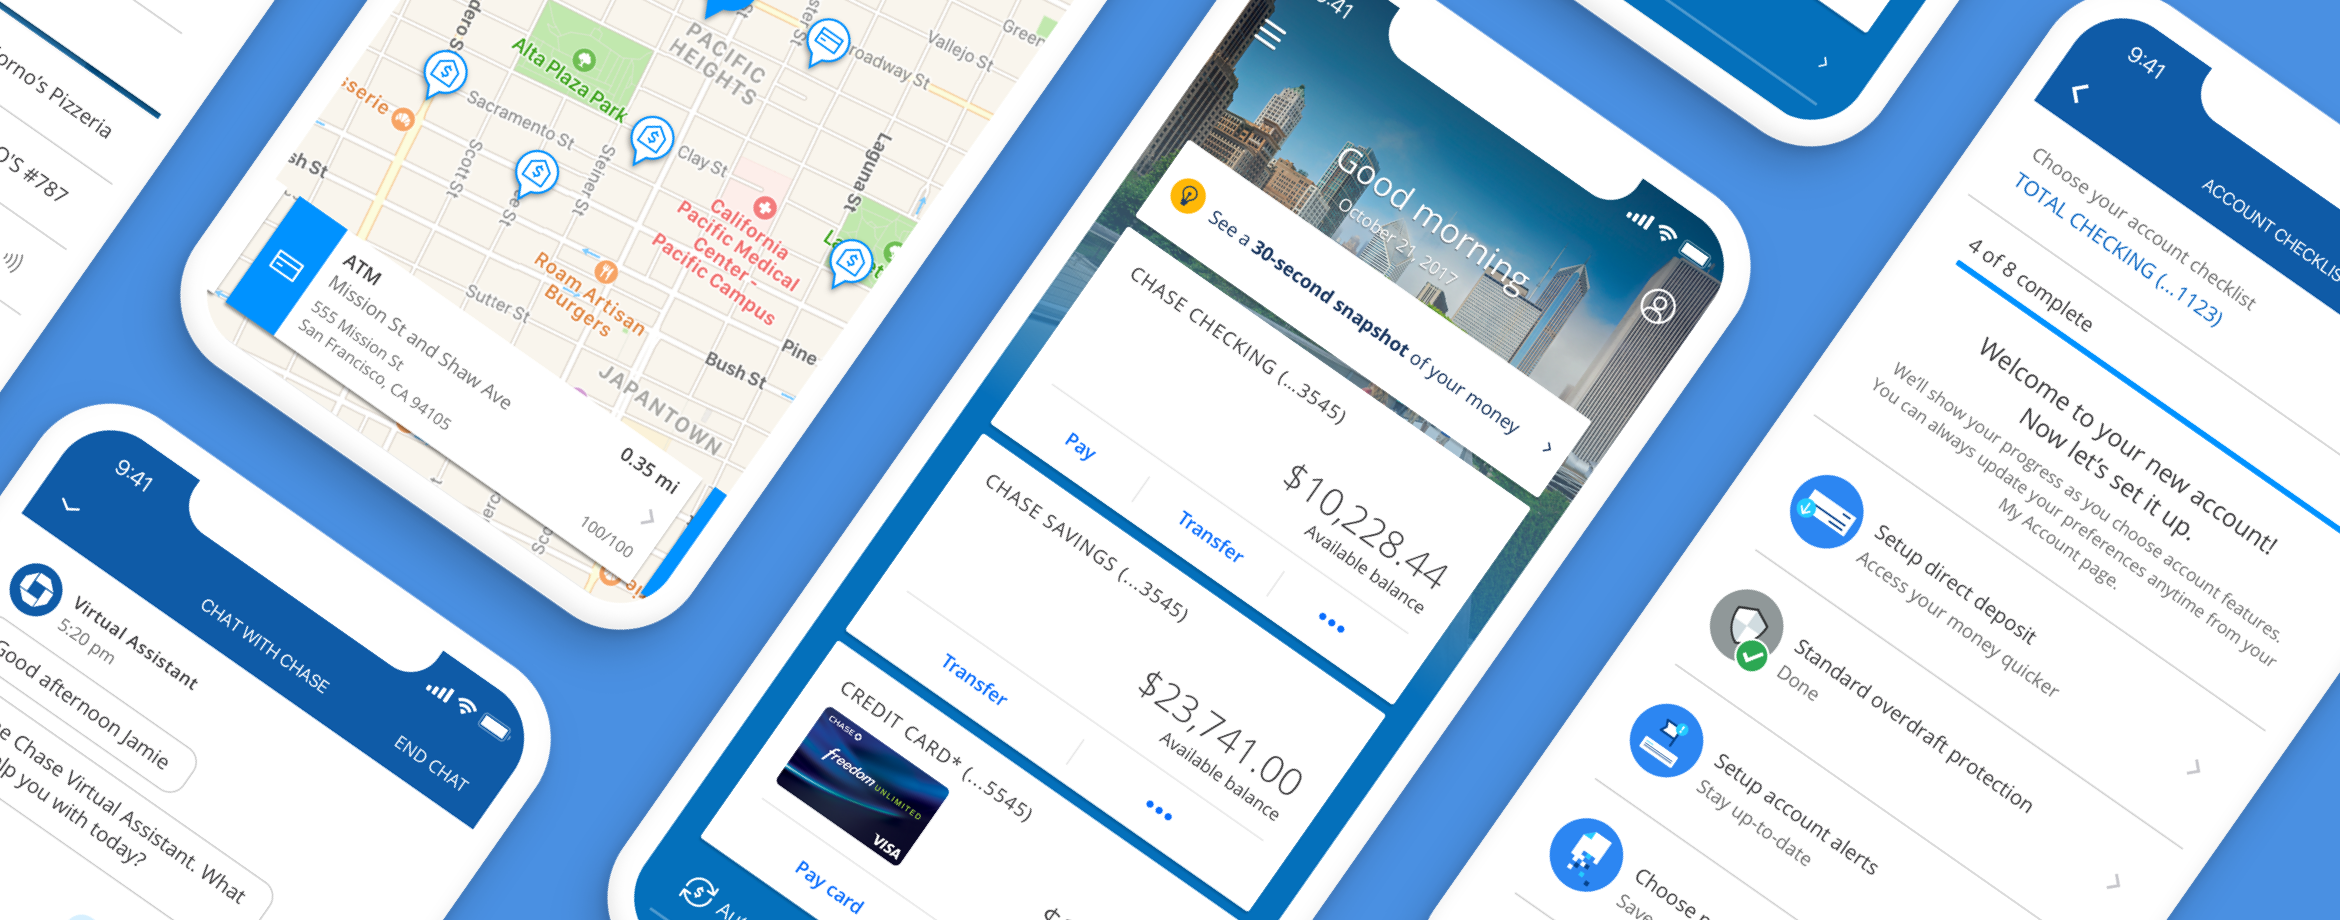 Other projects for Chase mobile